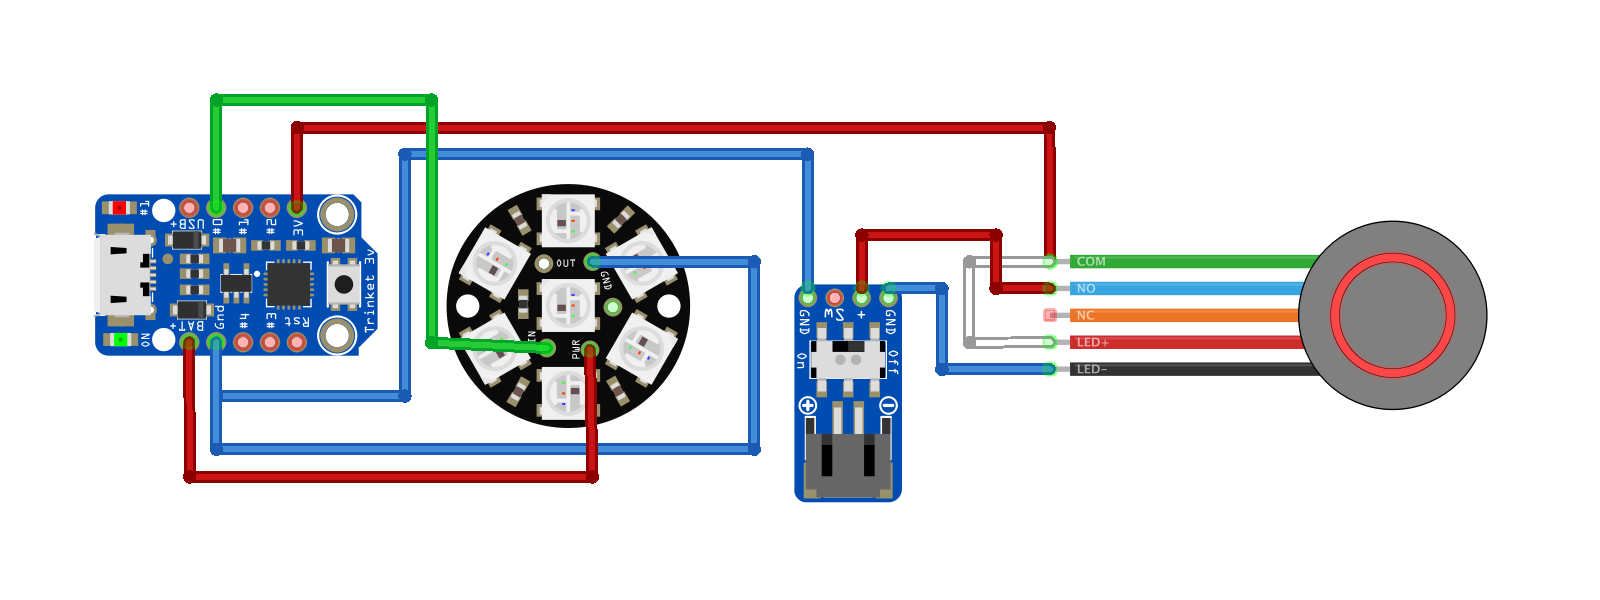 leds_circuit-diagram-cropped.png